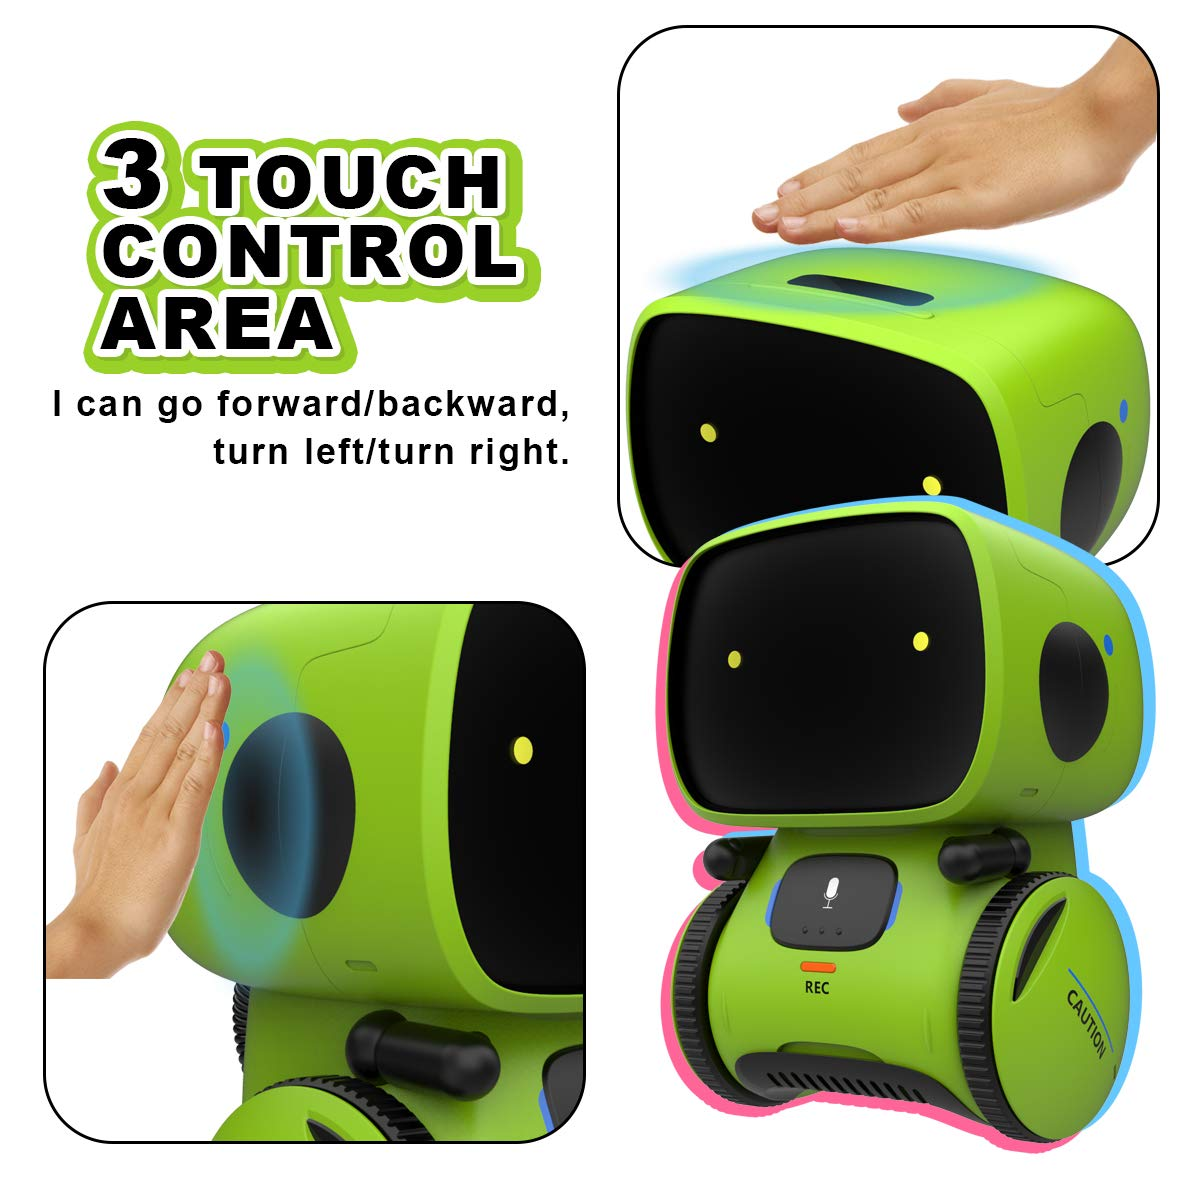 Gilobaby Kids Robot Toy, Talking Interactive Voice Controlled Touch Sensor Smart Robotics with Singing, Dancing, Repeating, Speech Recognition and Voice Recording, Gift for Kids Age 3+ (Green) by GILOBABY (Image #2)